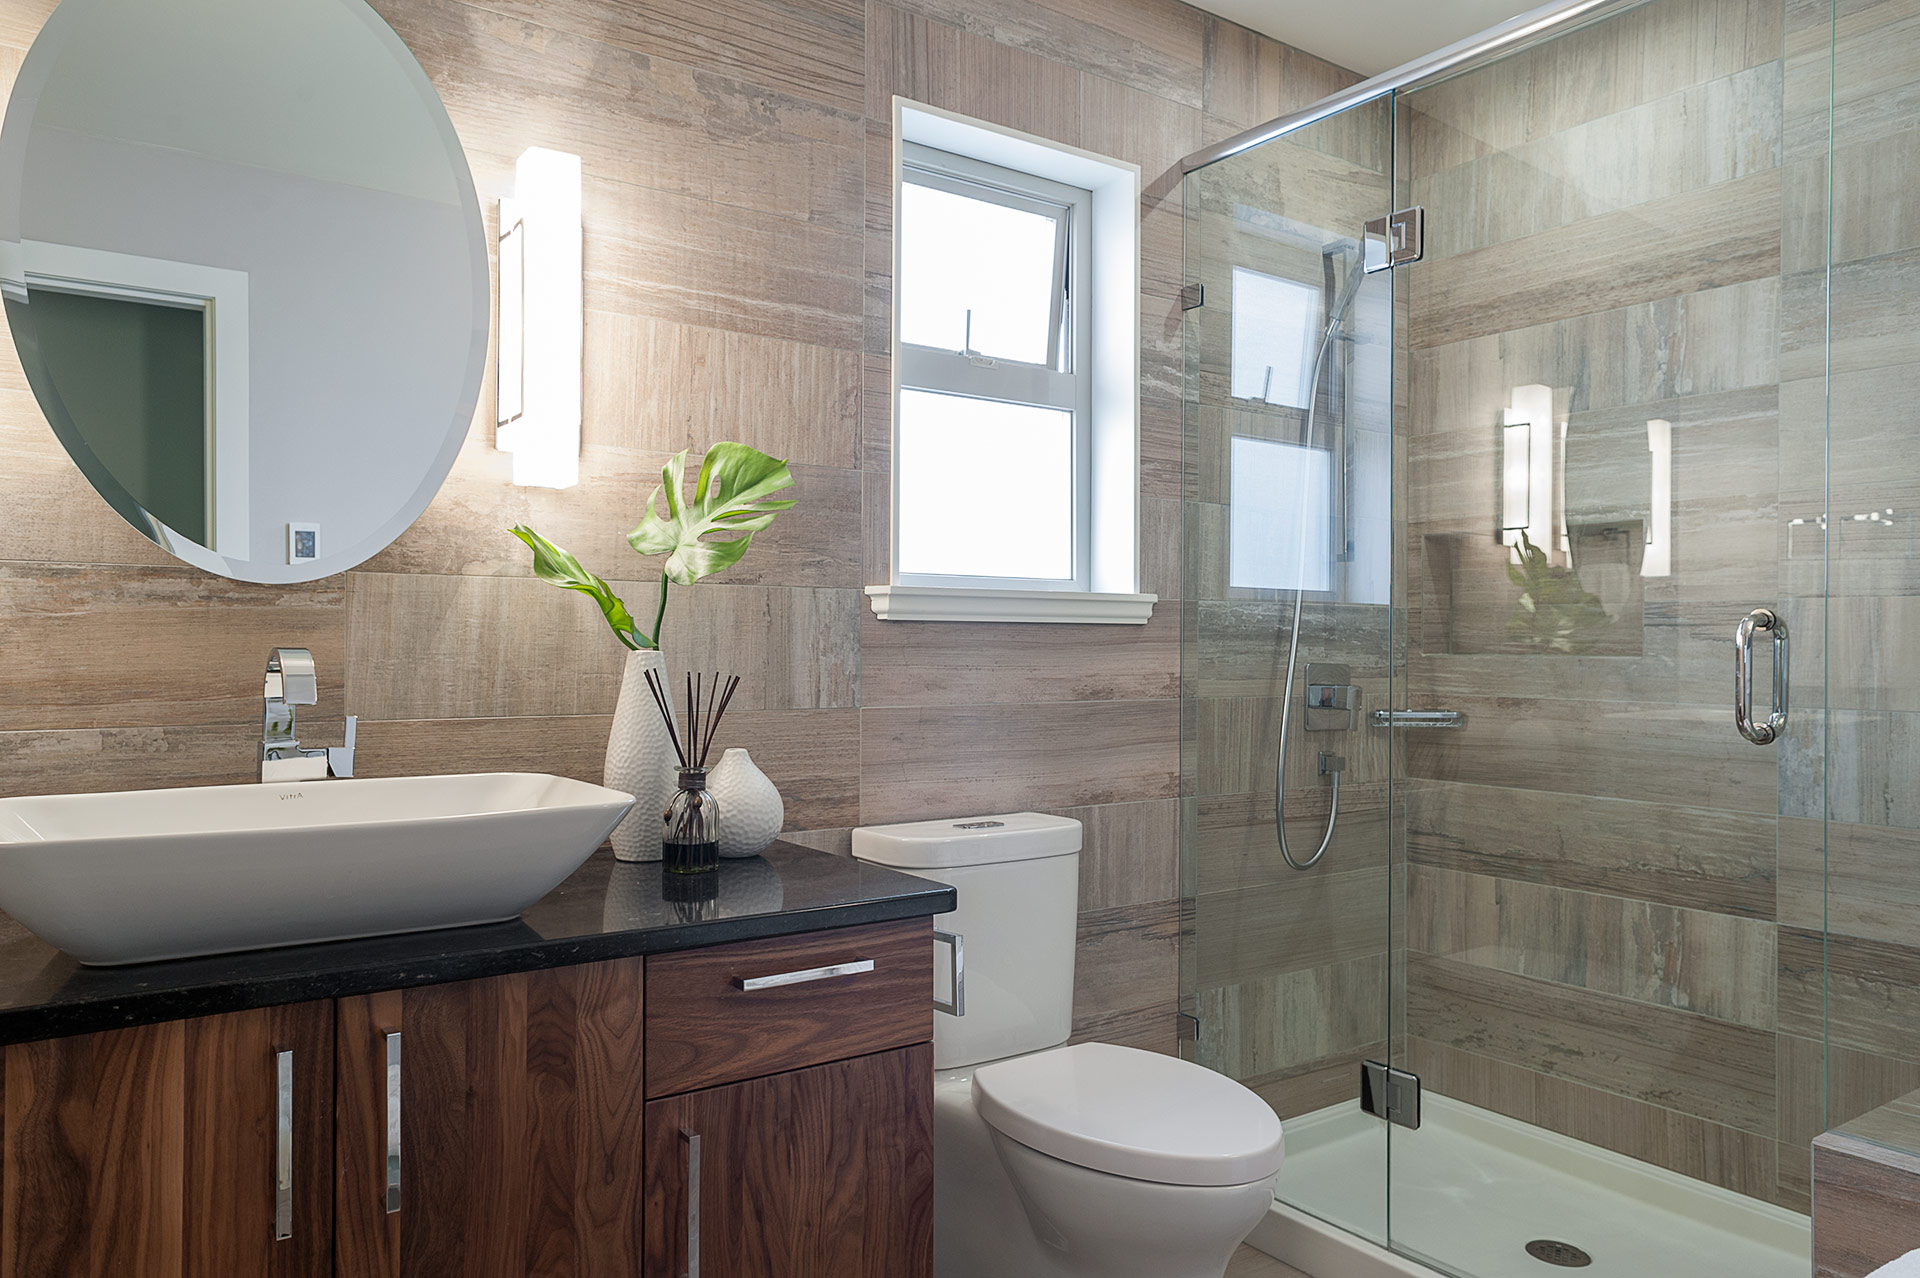 Small bathroom renovation loaded with style modern home for Small bathroom renovations